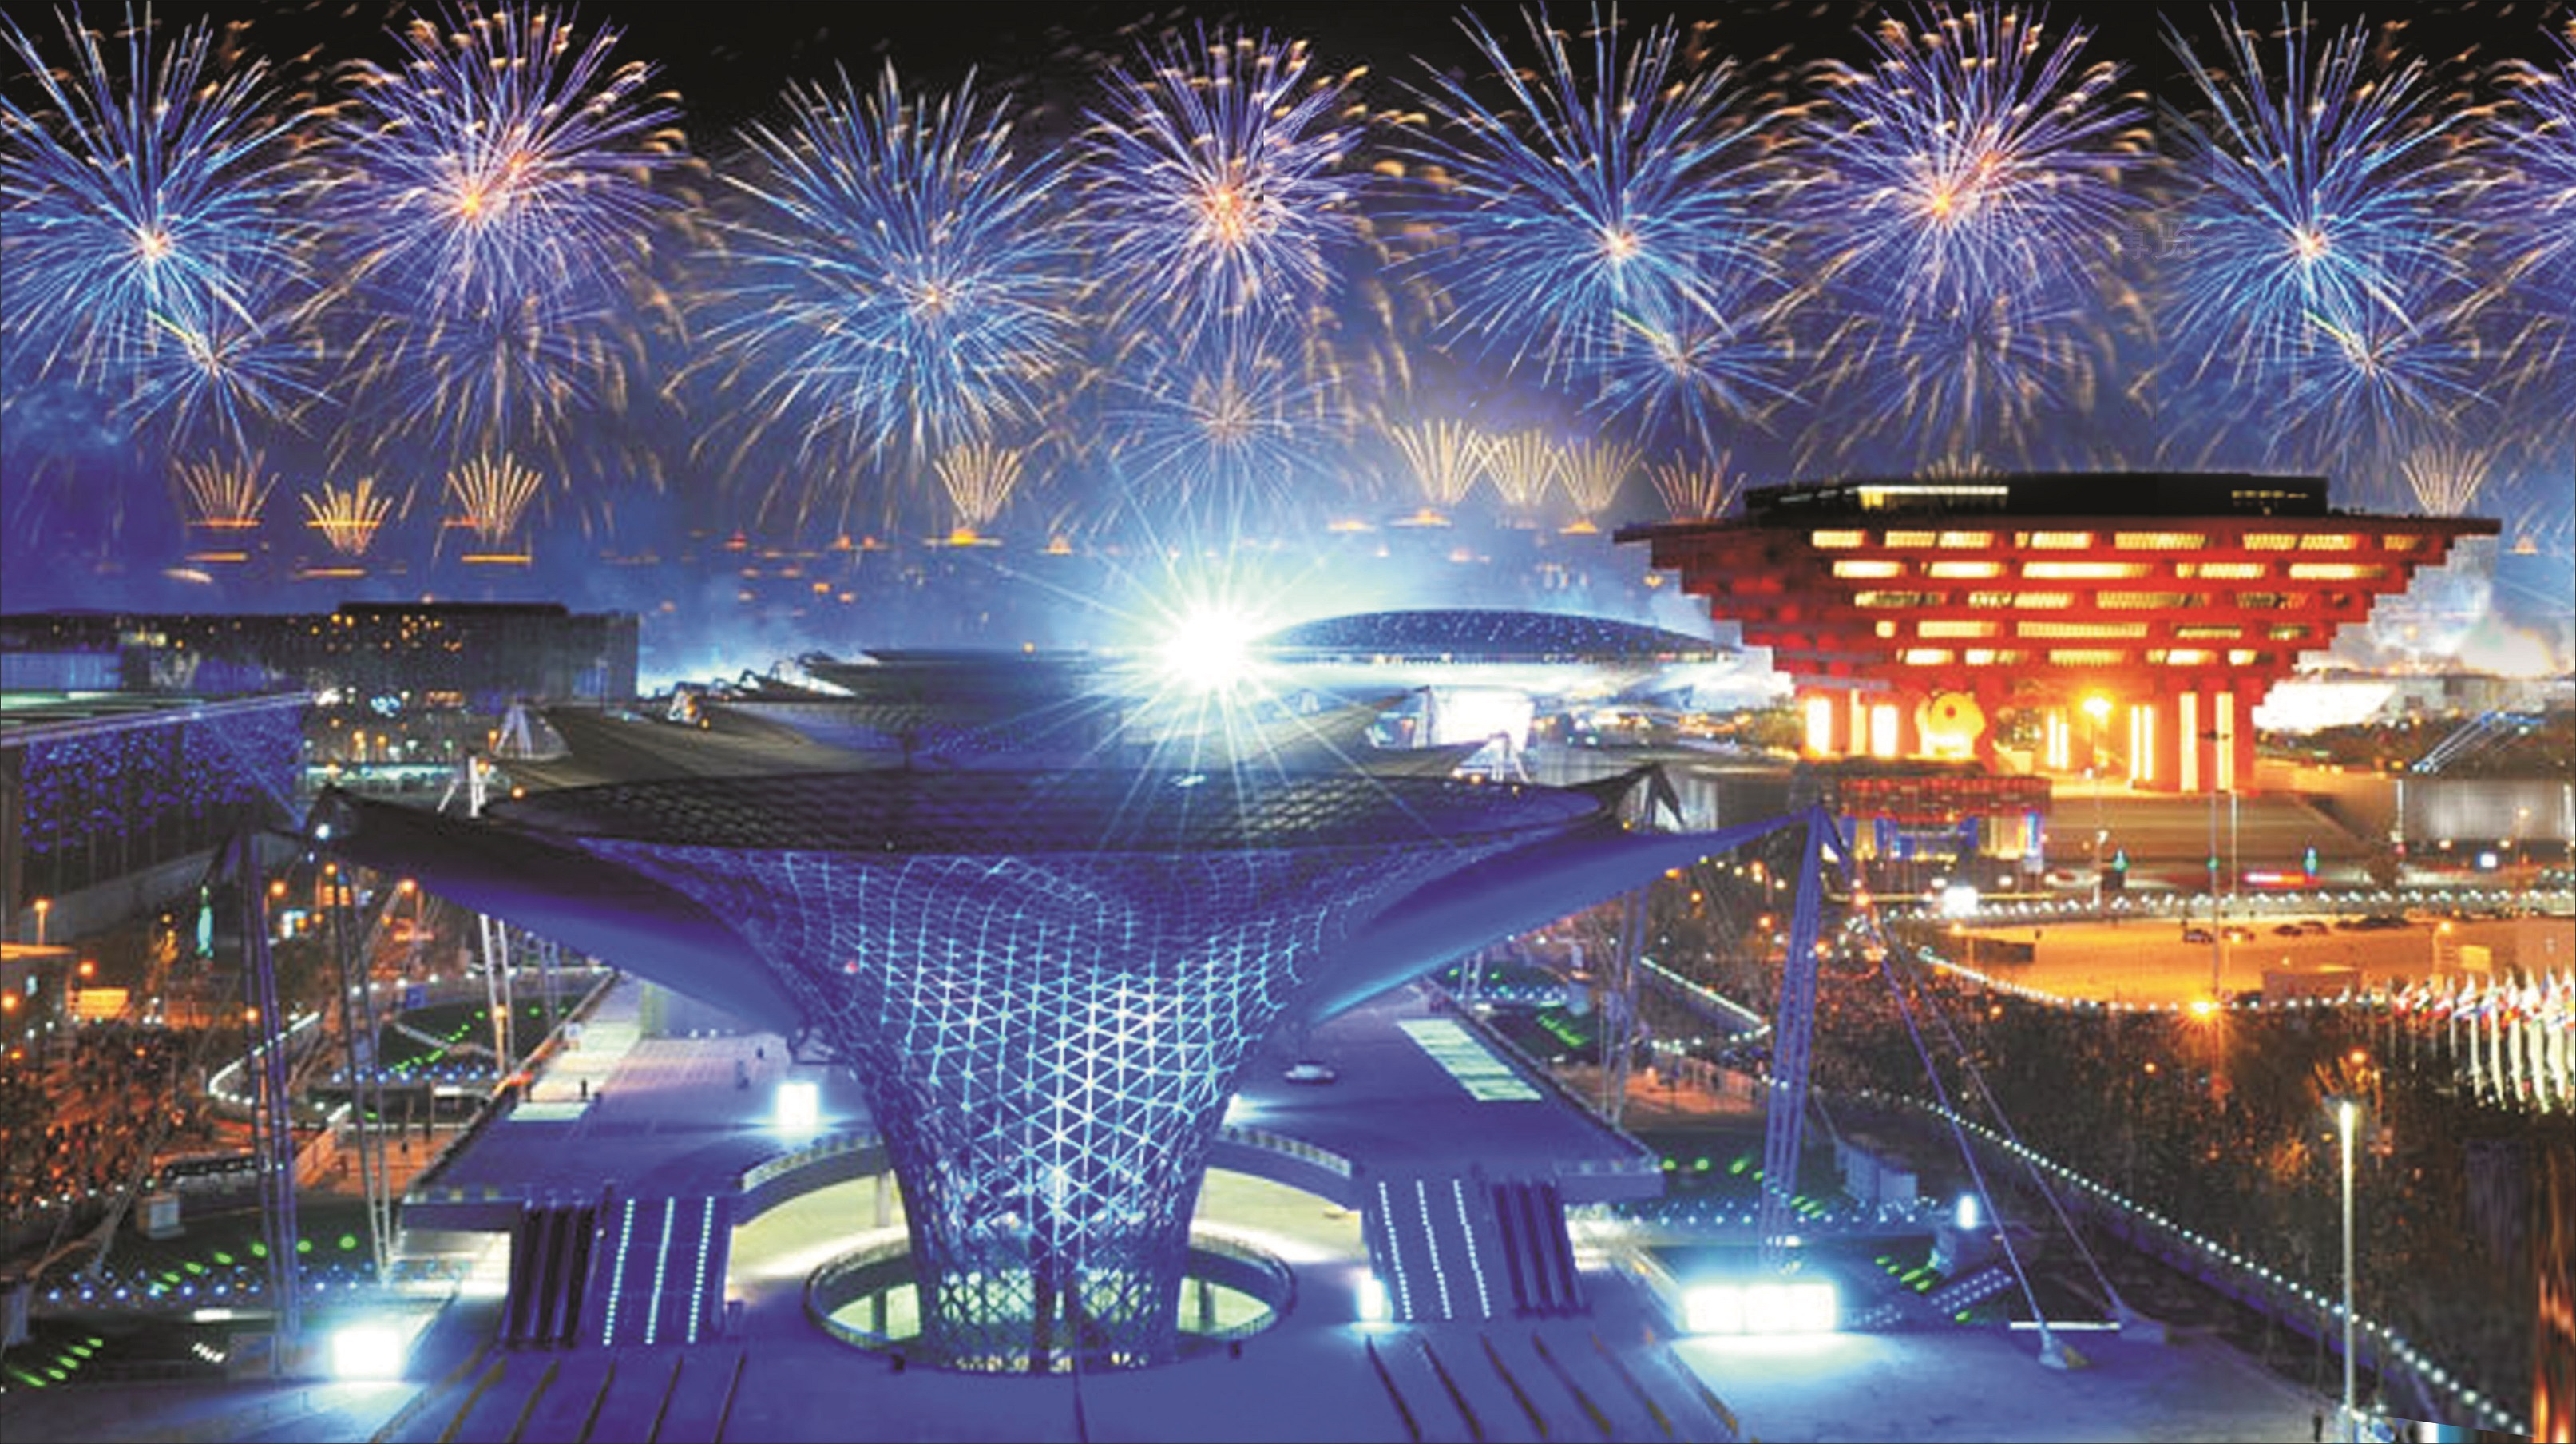 2010 SHANGHAI WORLD EXPO.FIREWORKS SHOW